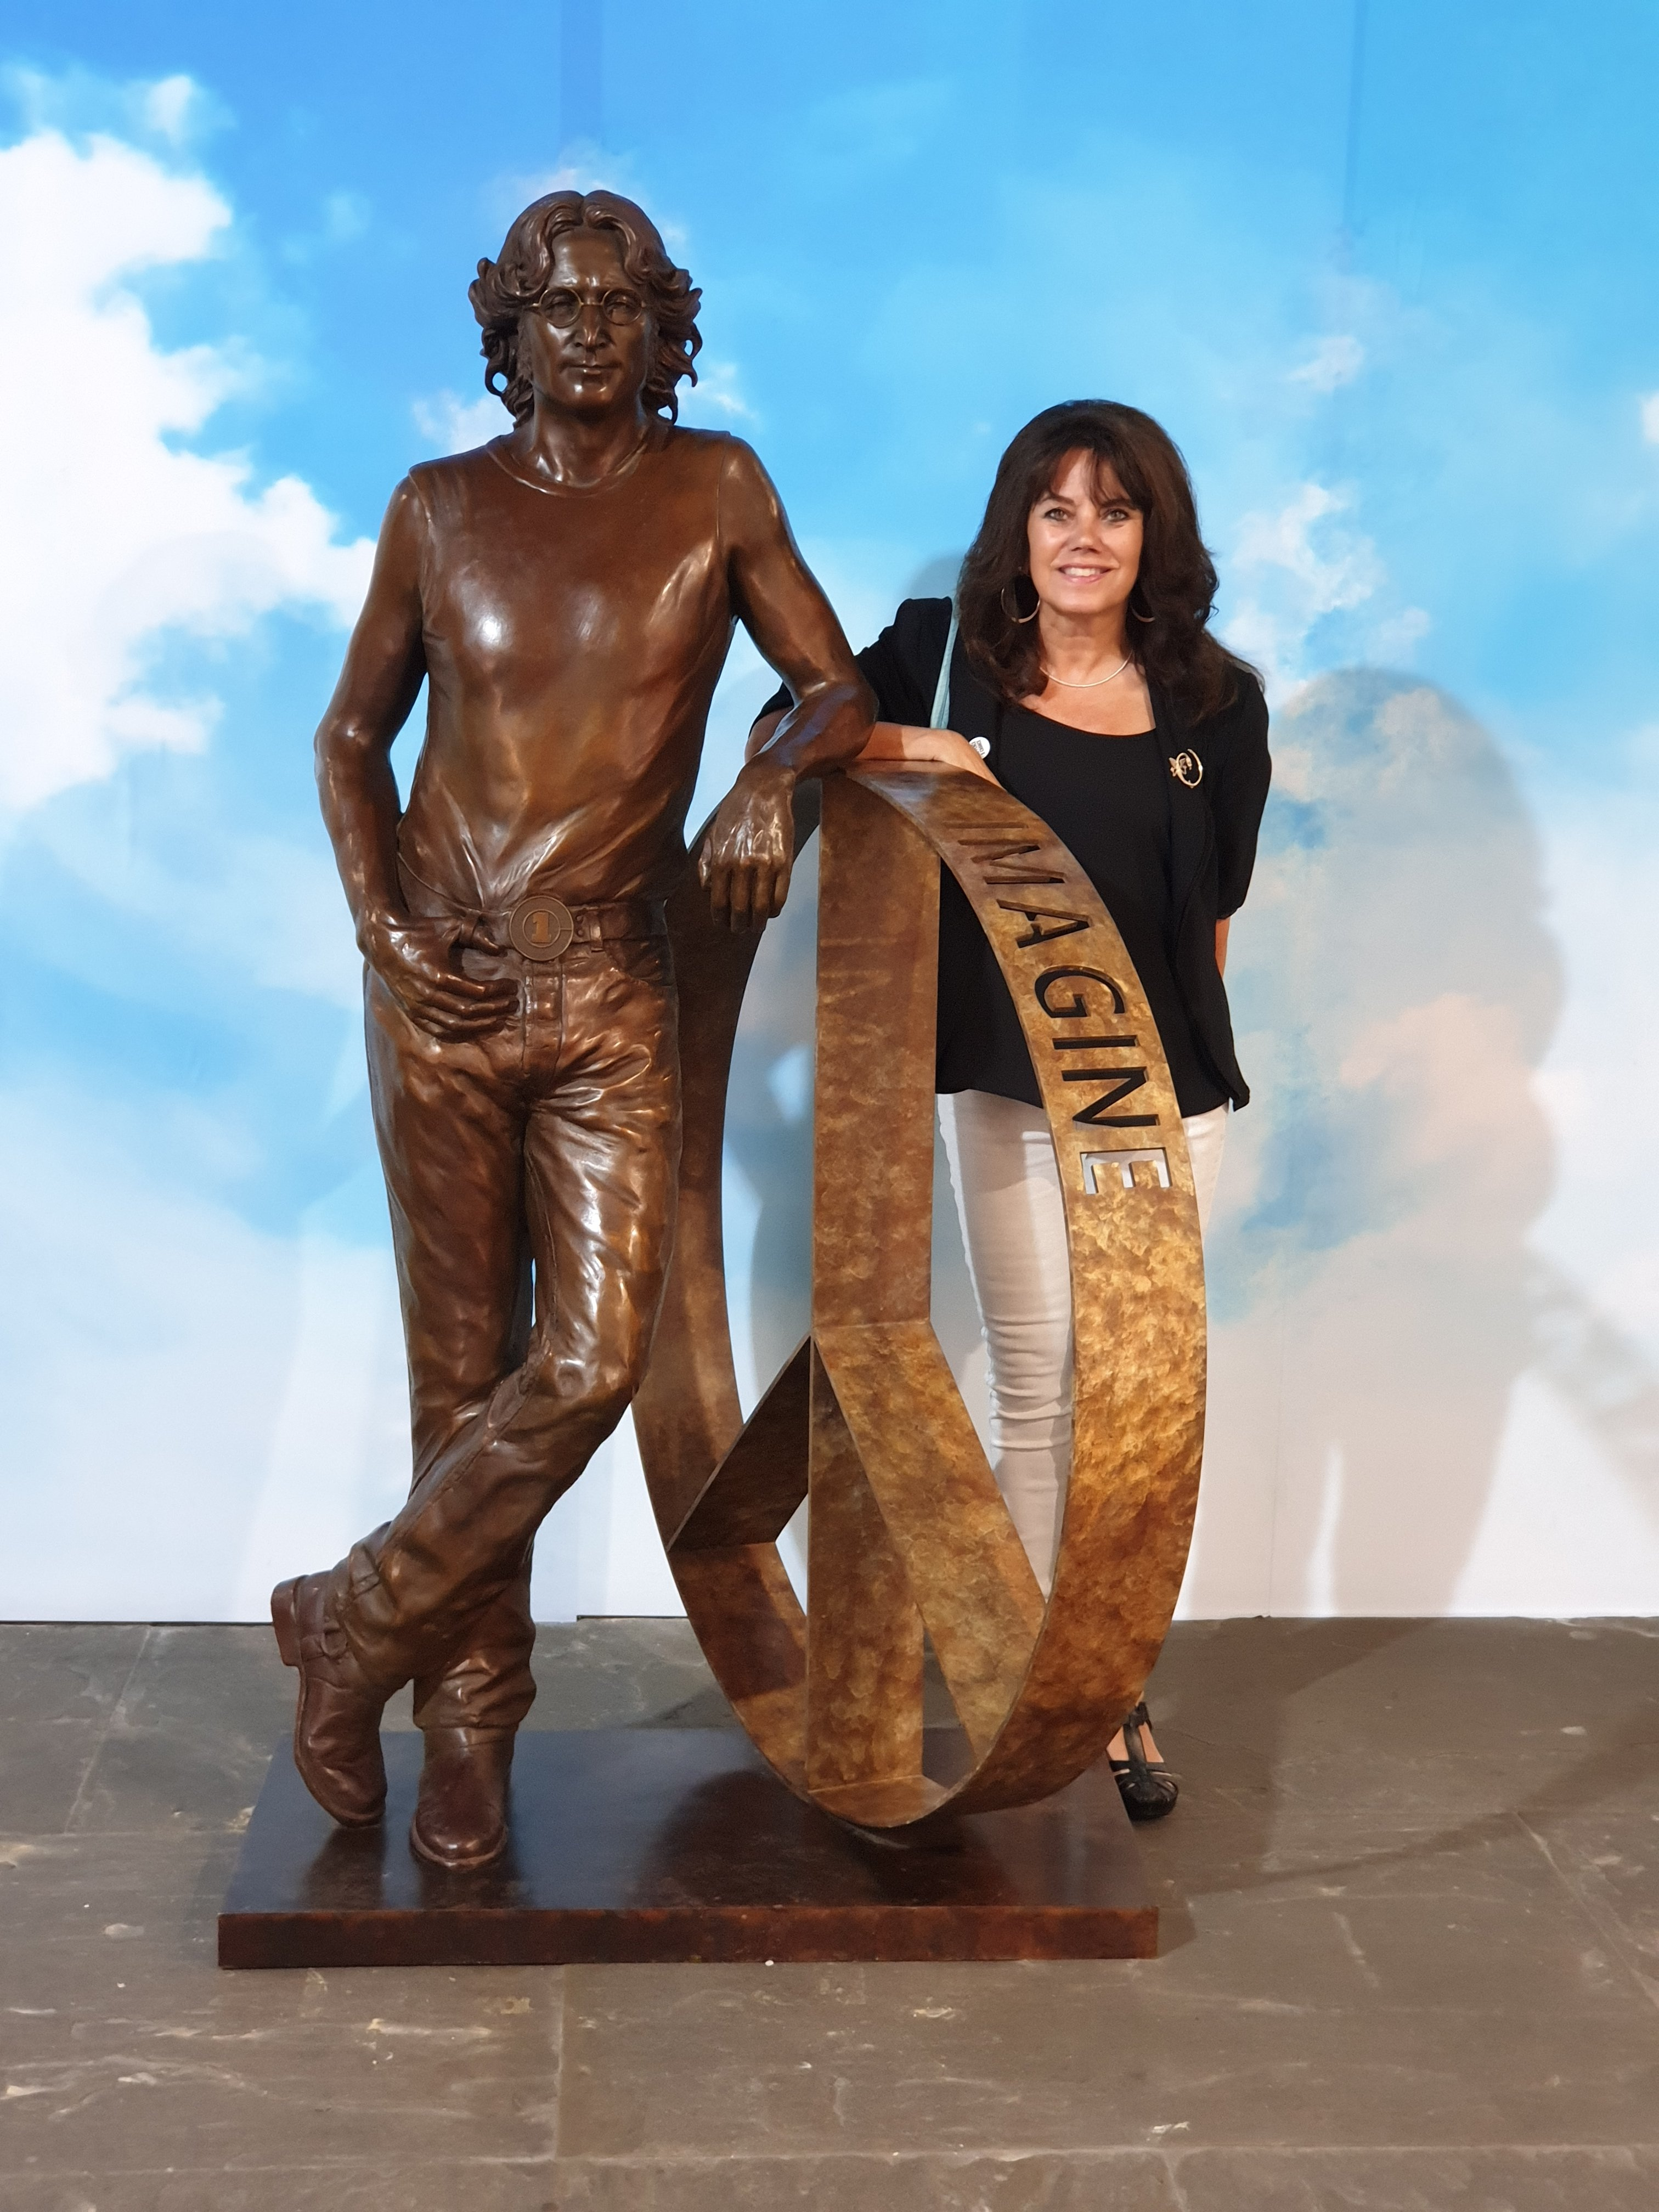 Statue of John Lennon on display in St George's hall until the end of August